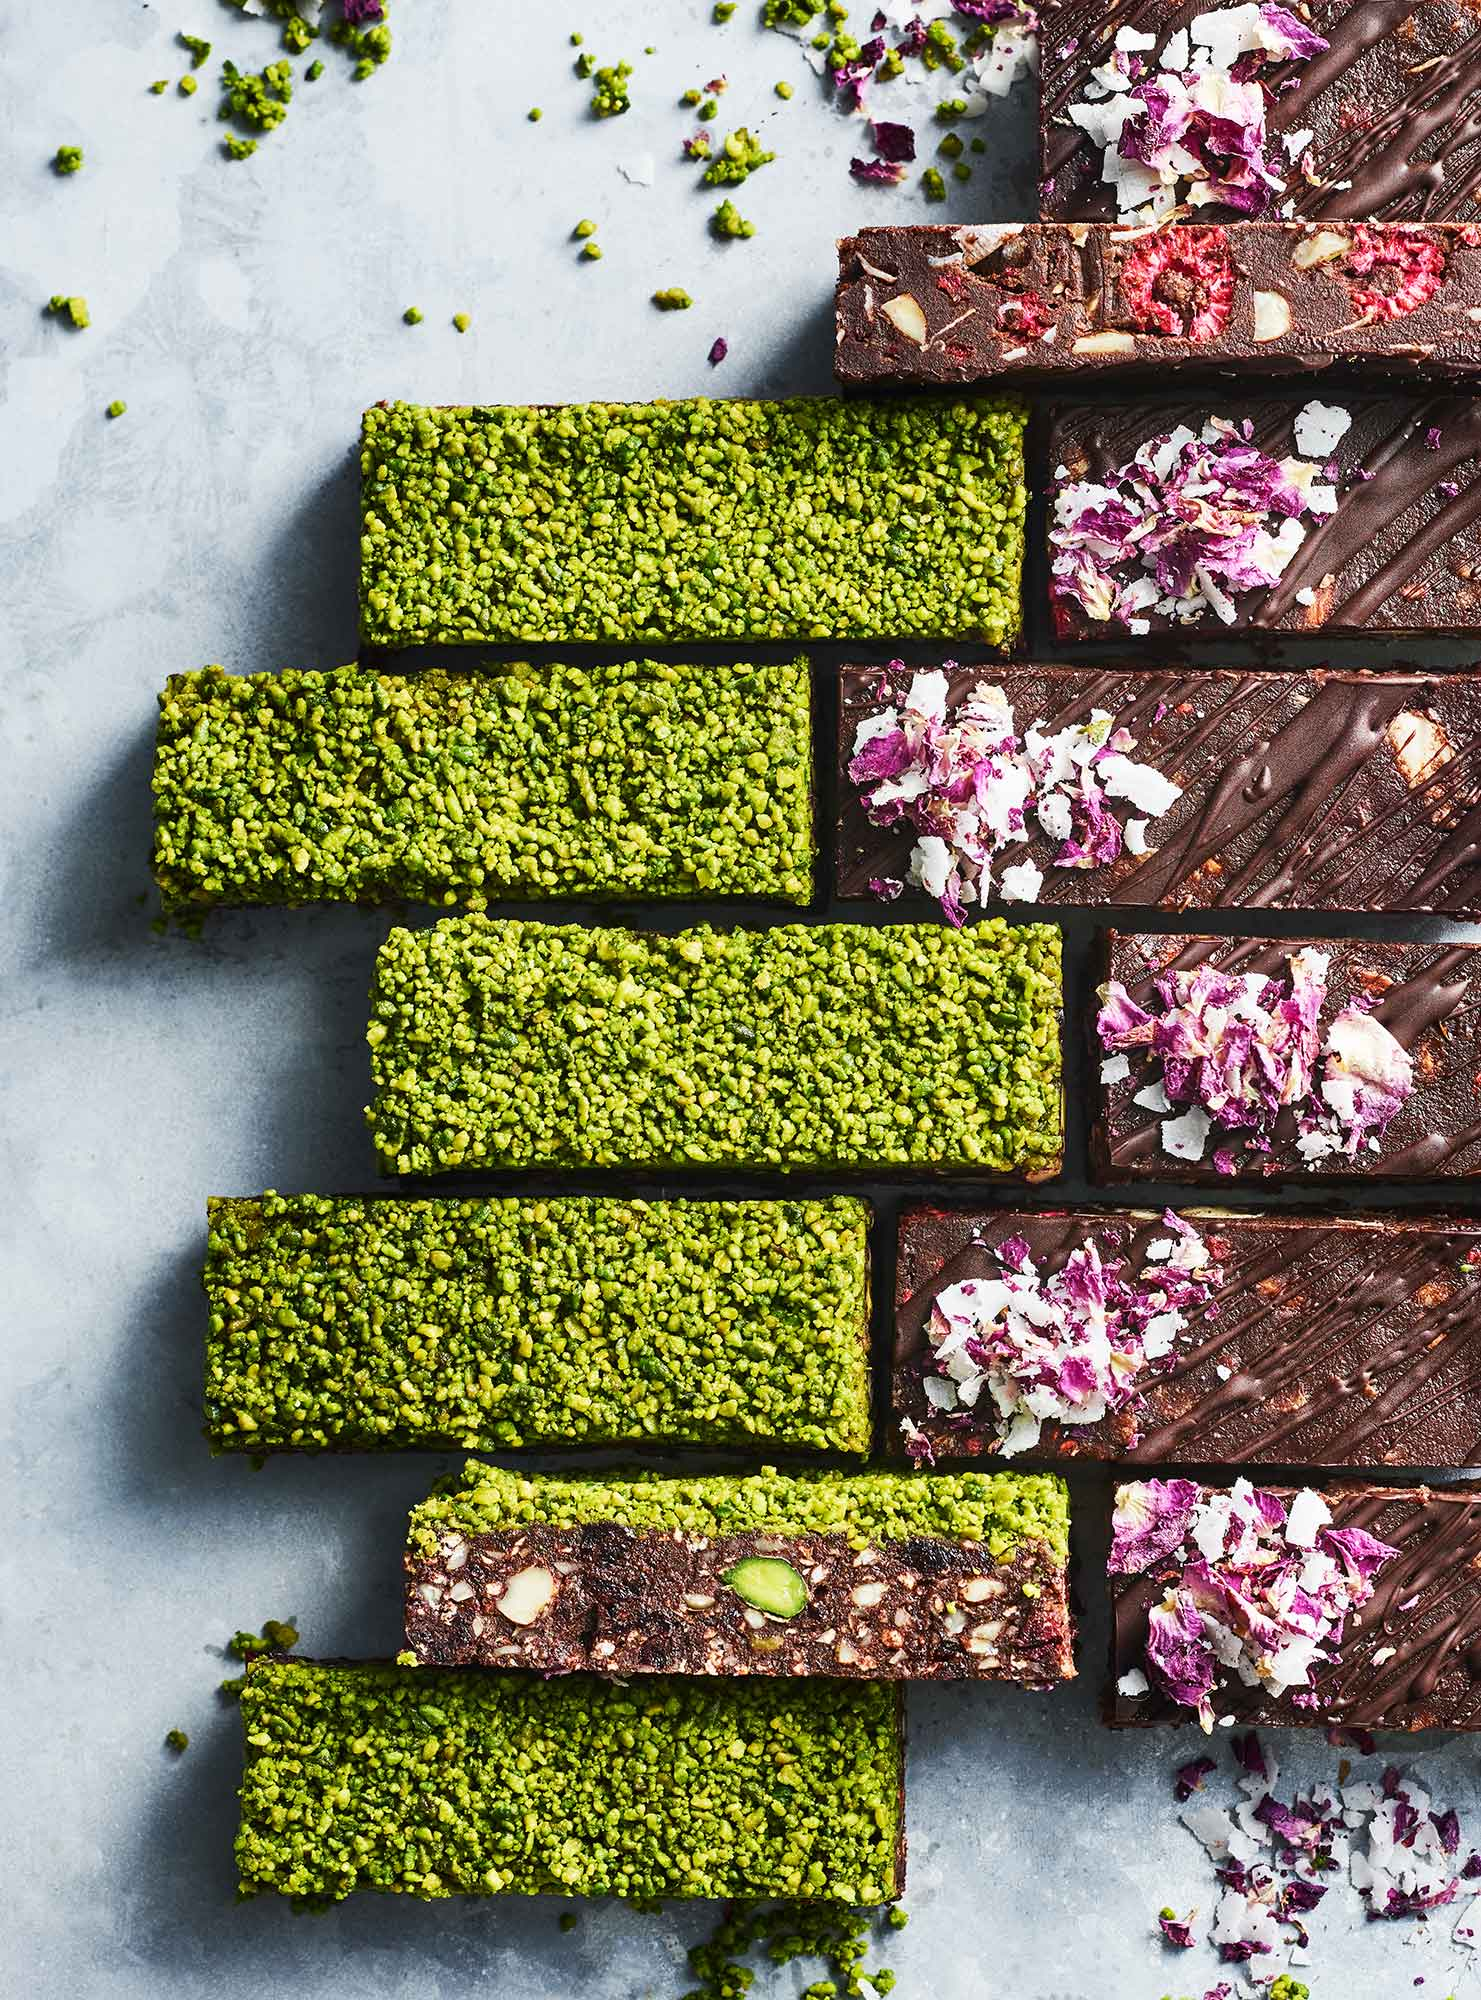 Pistachio_Cranberry_BrownieTurkish_Delight_V2_180518_272472